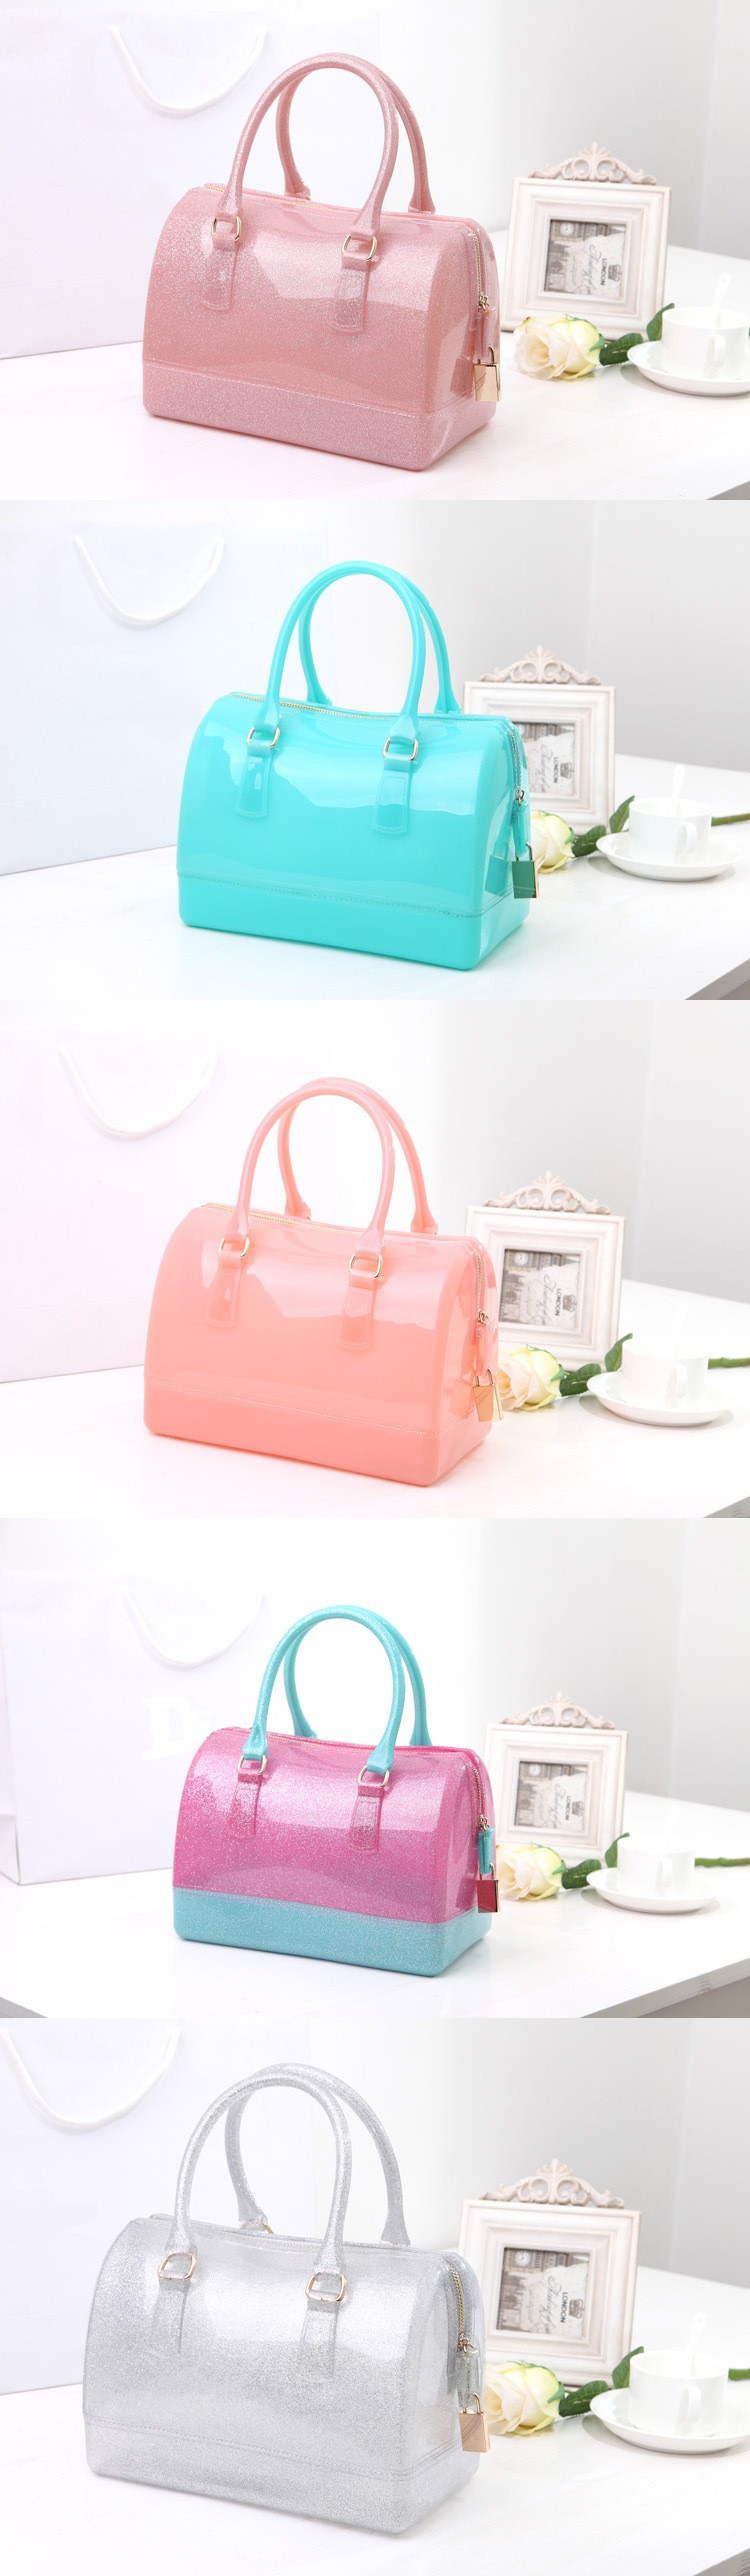 China tote bags brand Suppliers